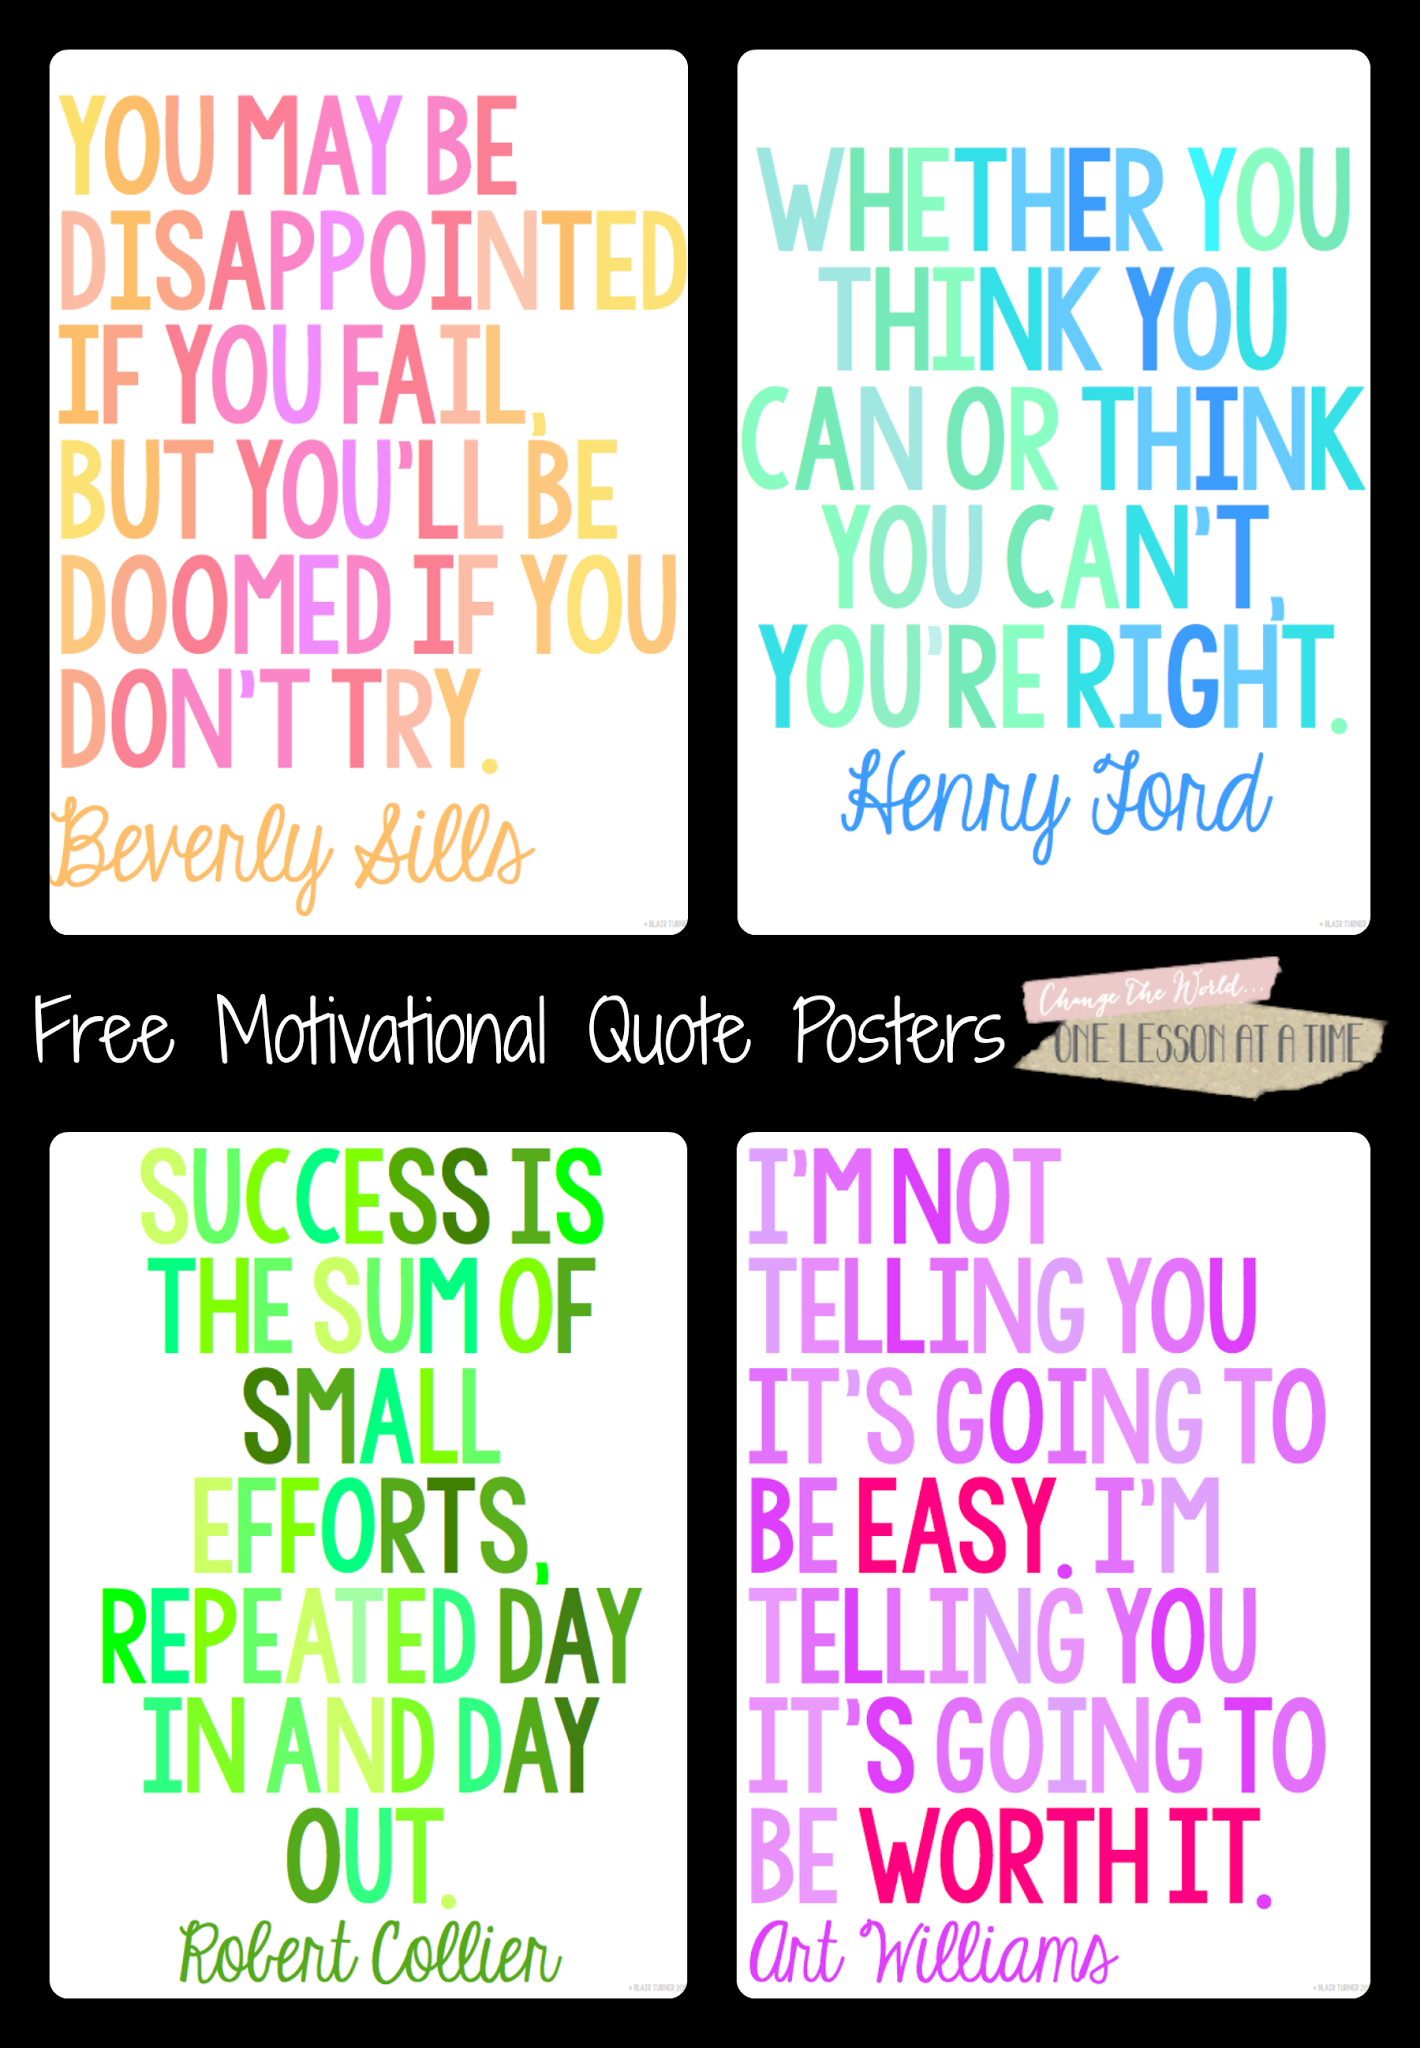 Motivational Quotes For State Testing {Free Posters